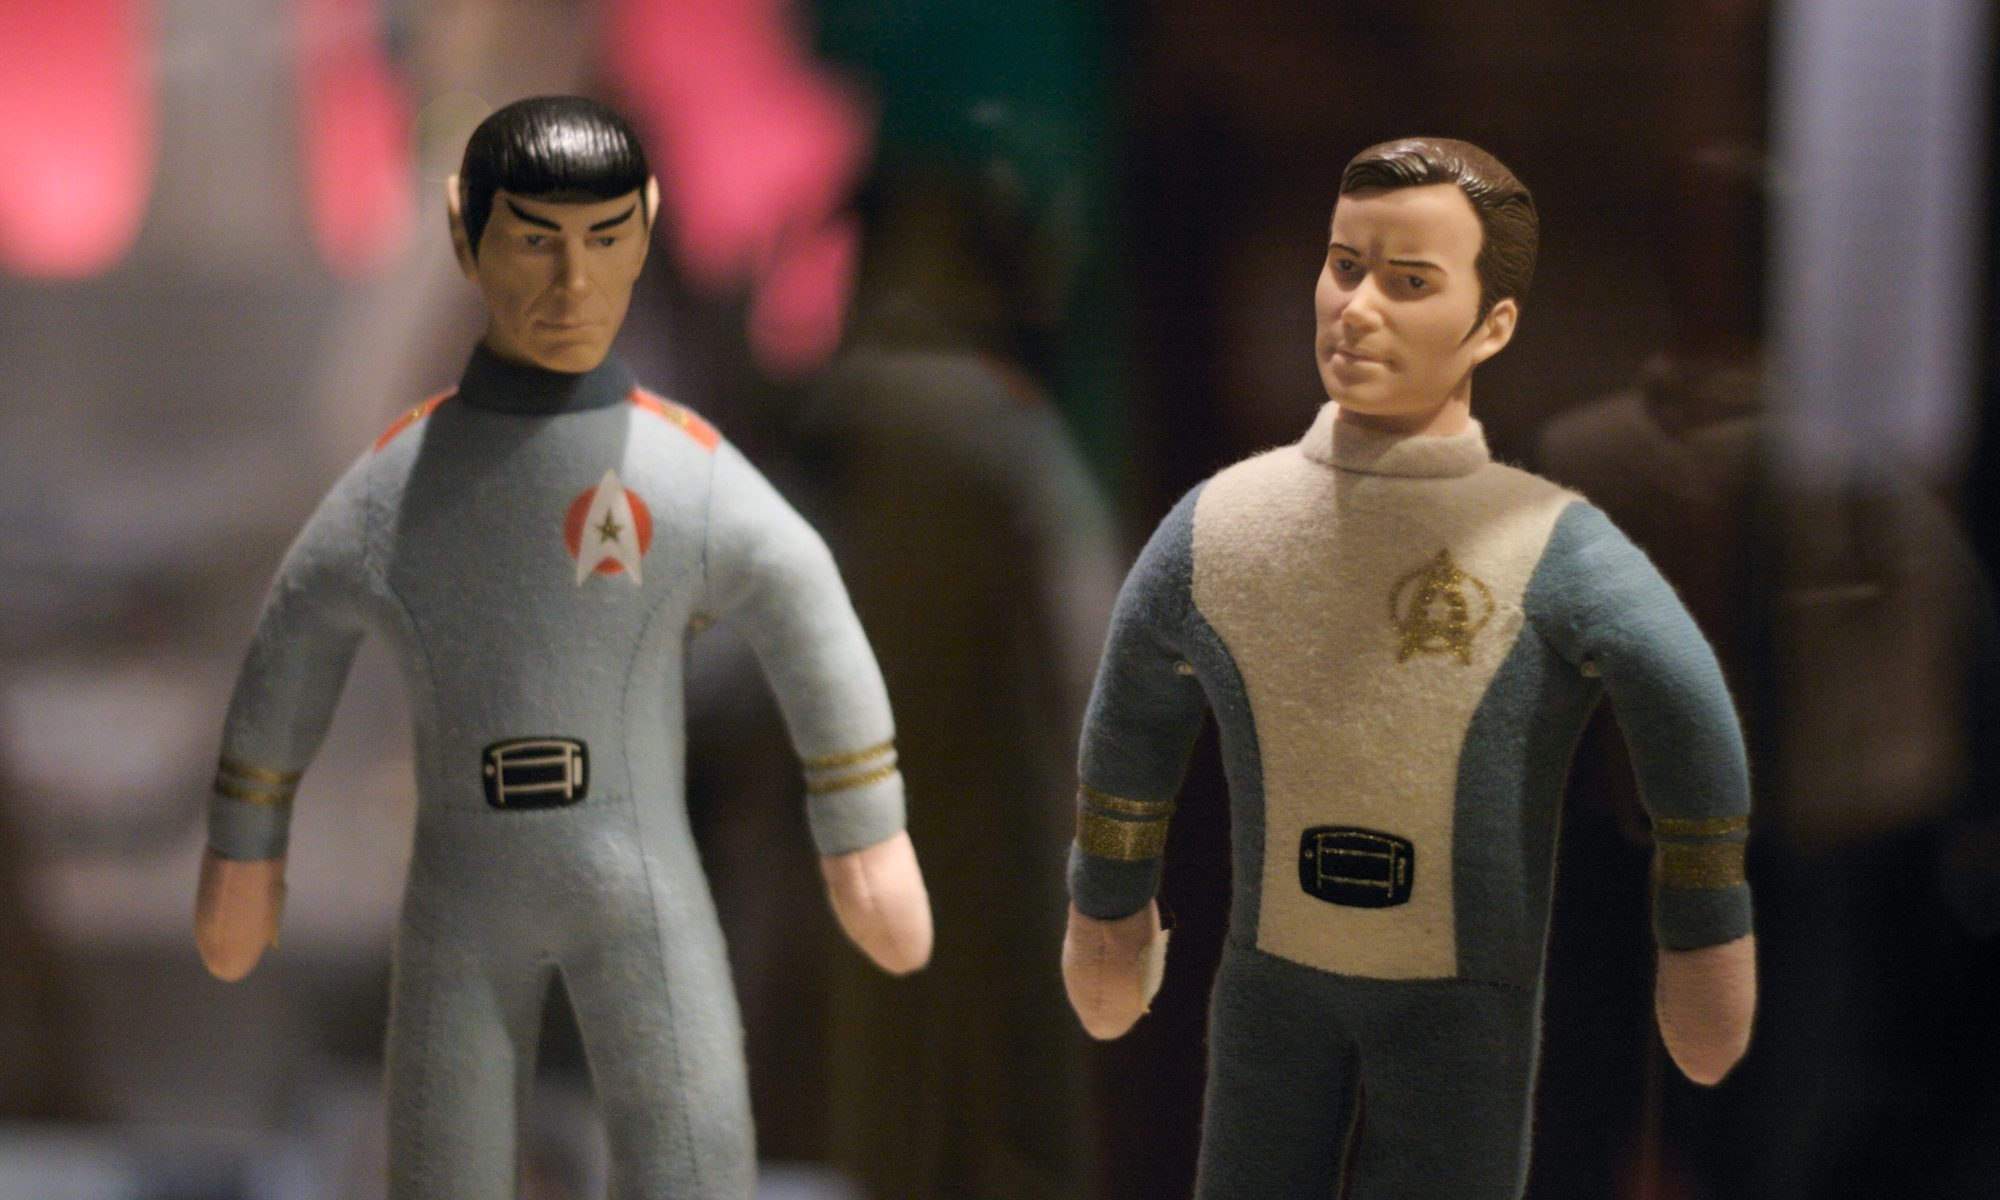 Mr. Spock and Captain Kirk by Marcin Wichary